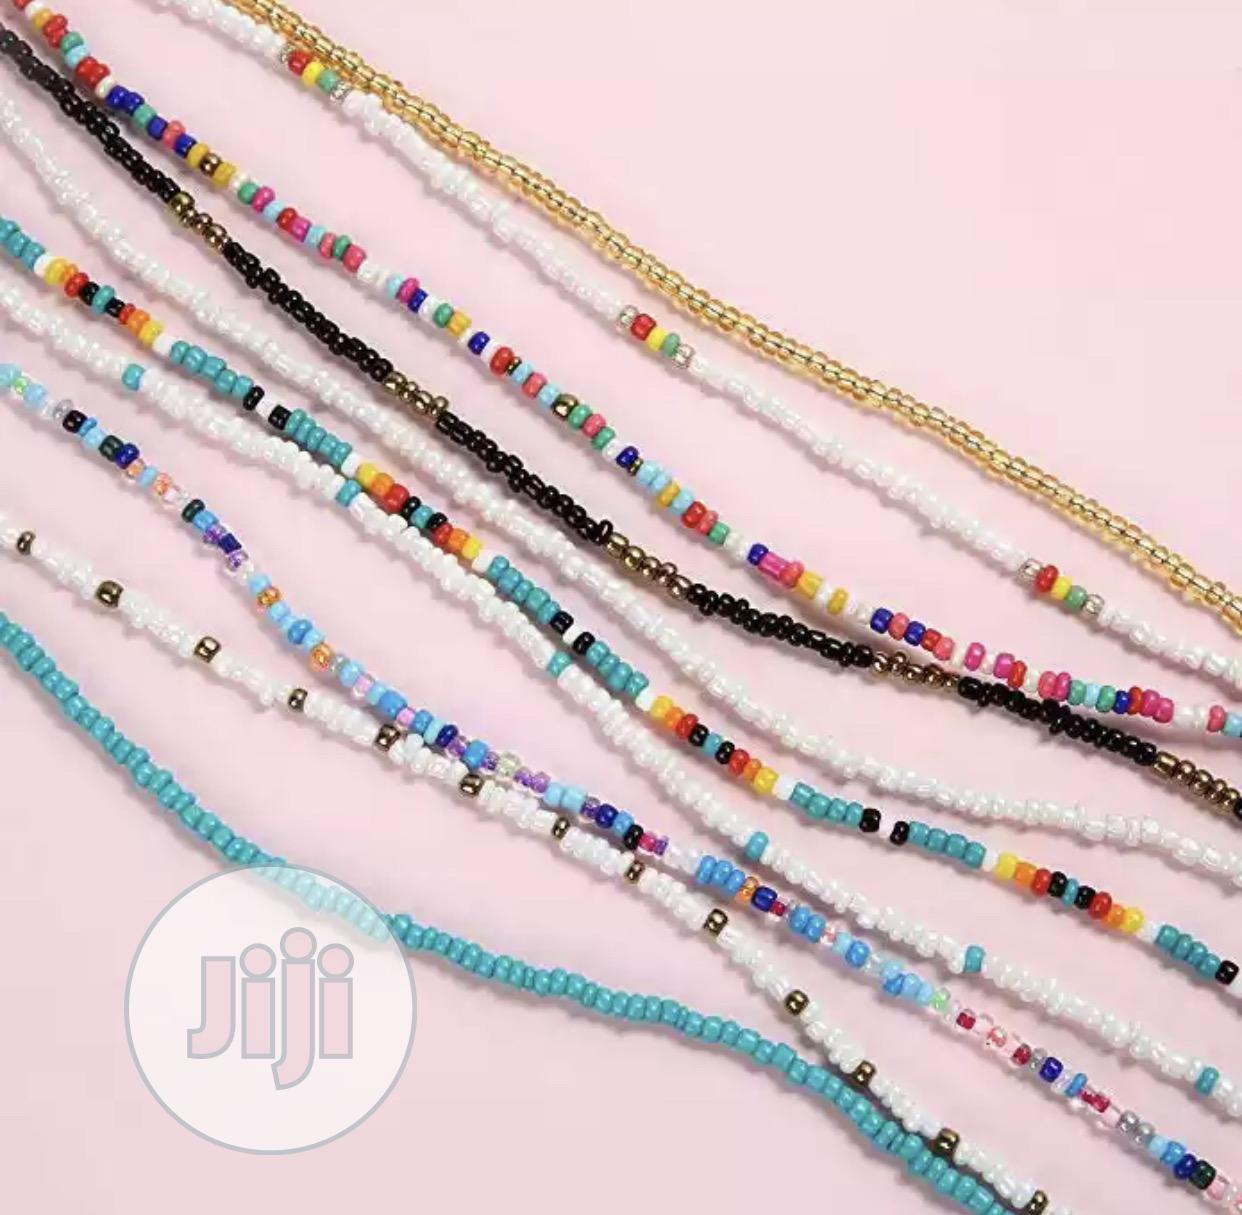 Archive: New 2020 Vintage Beaded Waistband NBGS Jewelry